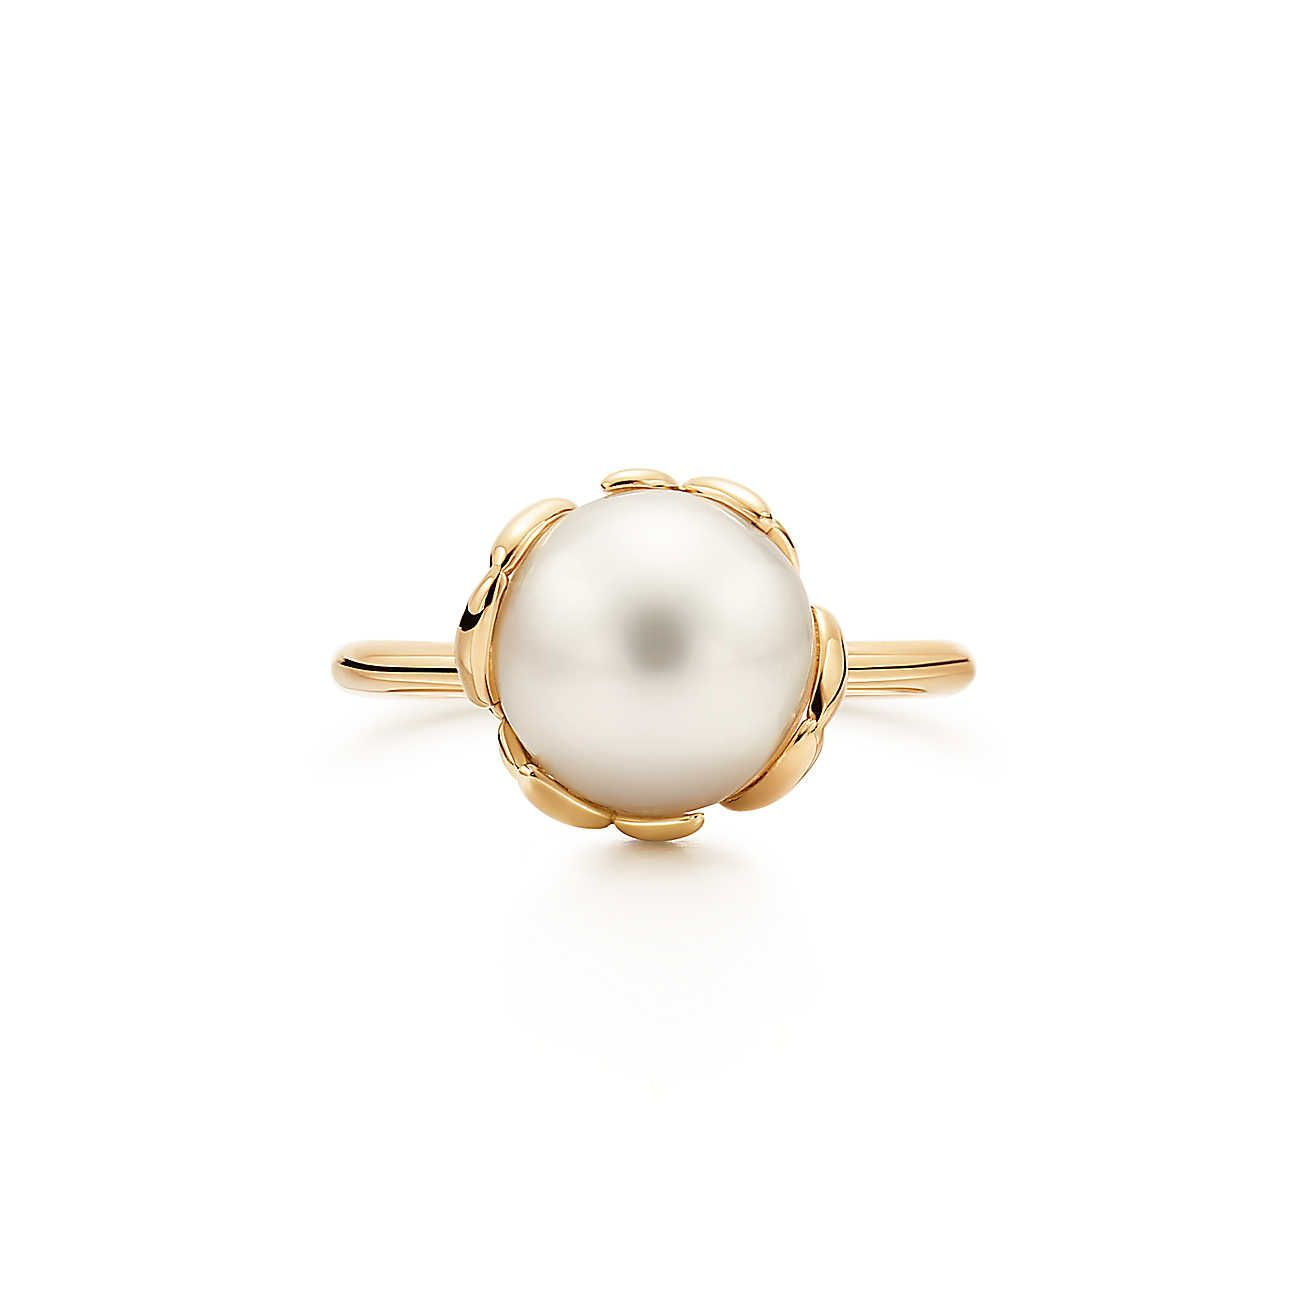 6cbf6bc61 Paloma Picasso® Olive Leaf Pearl Ring in 2018 | Shine Bright Like A ...